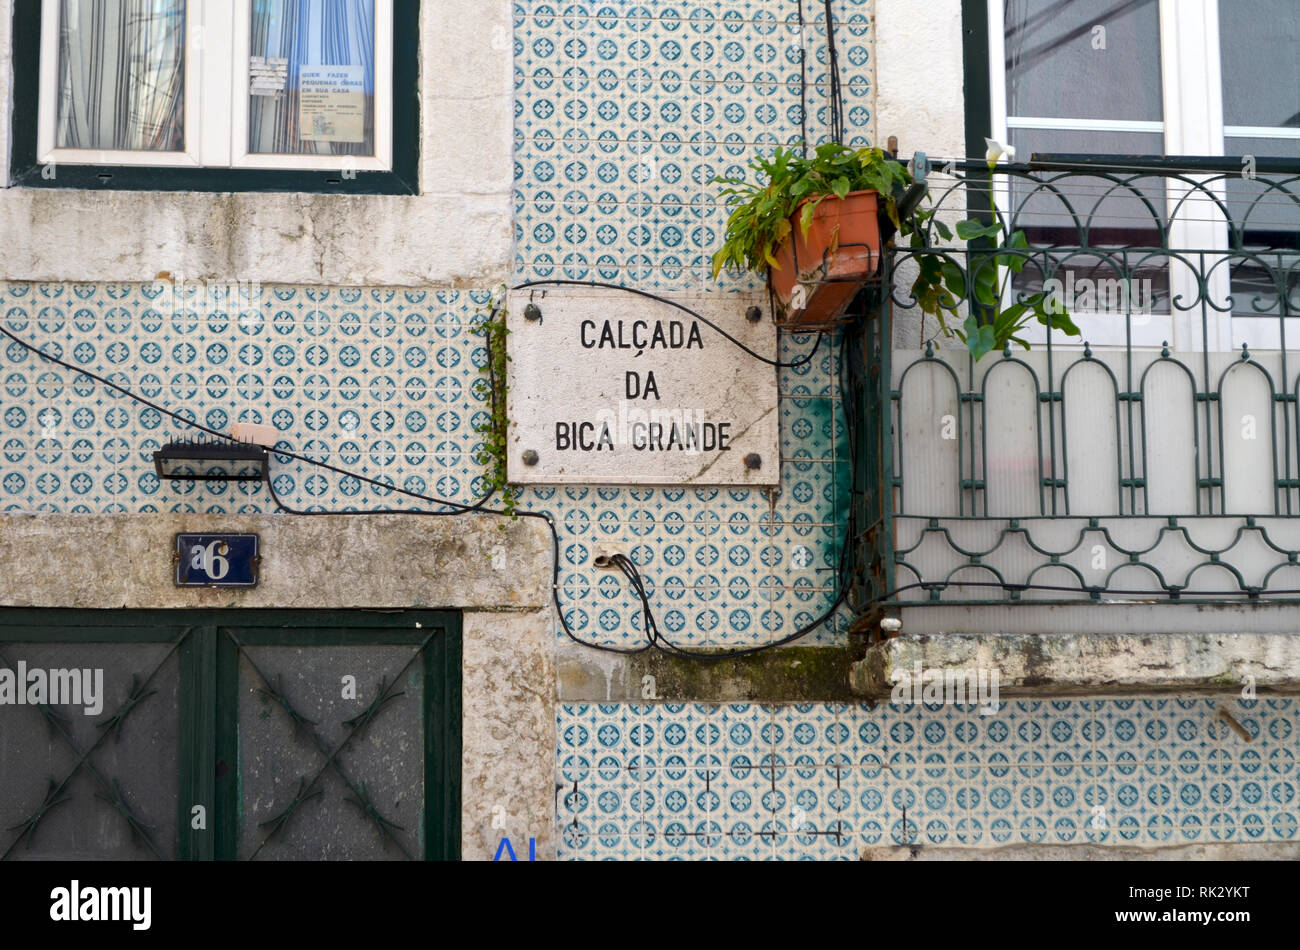 Lisbon's Bica neighbourhood, a traditional area now threatened by gentrification, real estate speculation and tourism boom - Stock Image